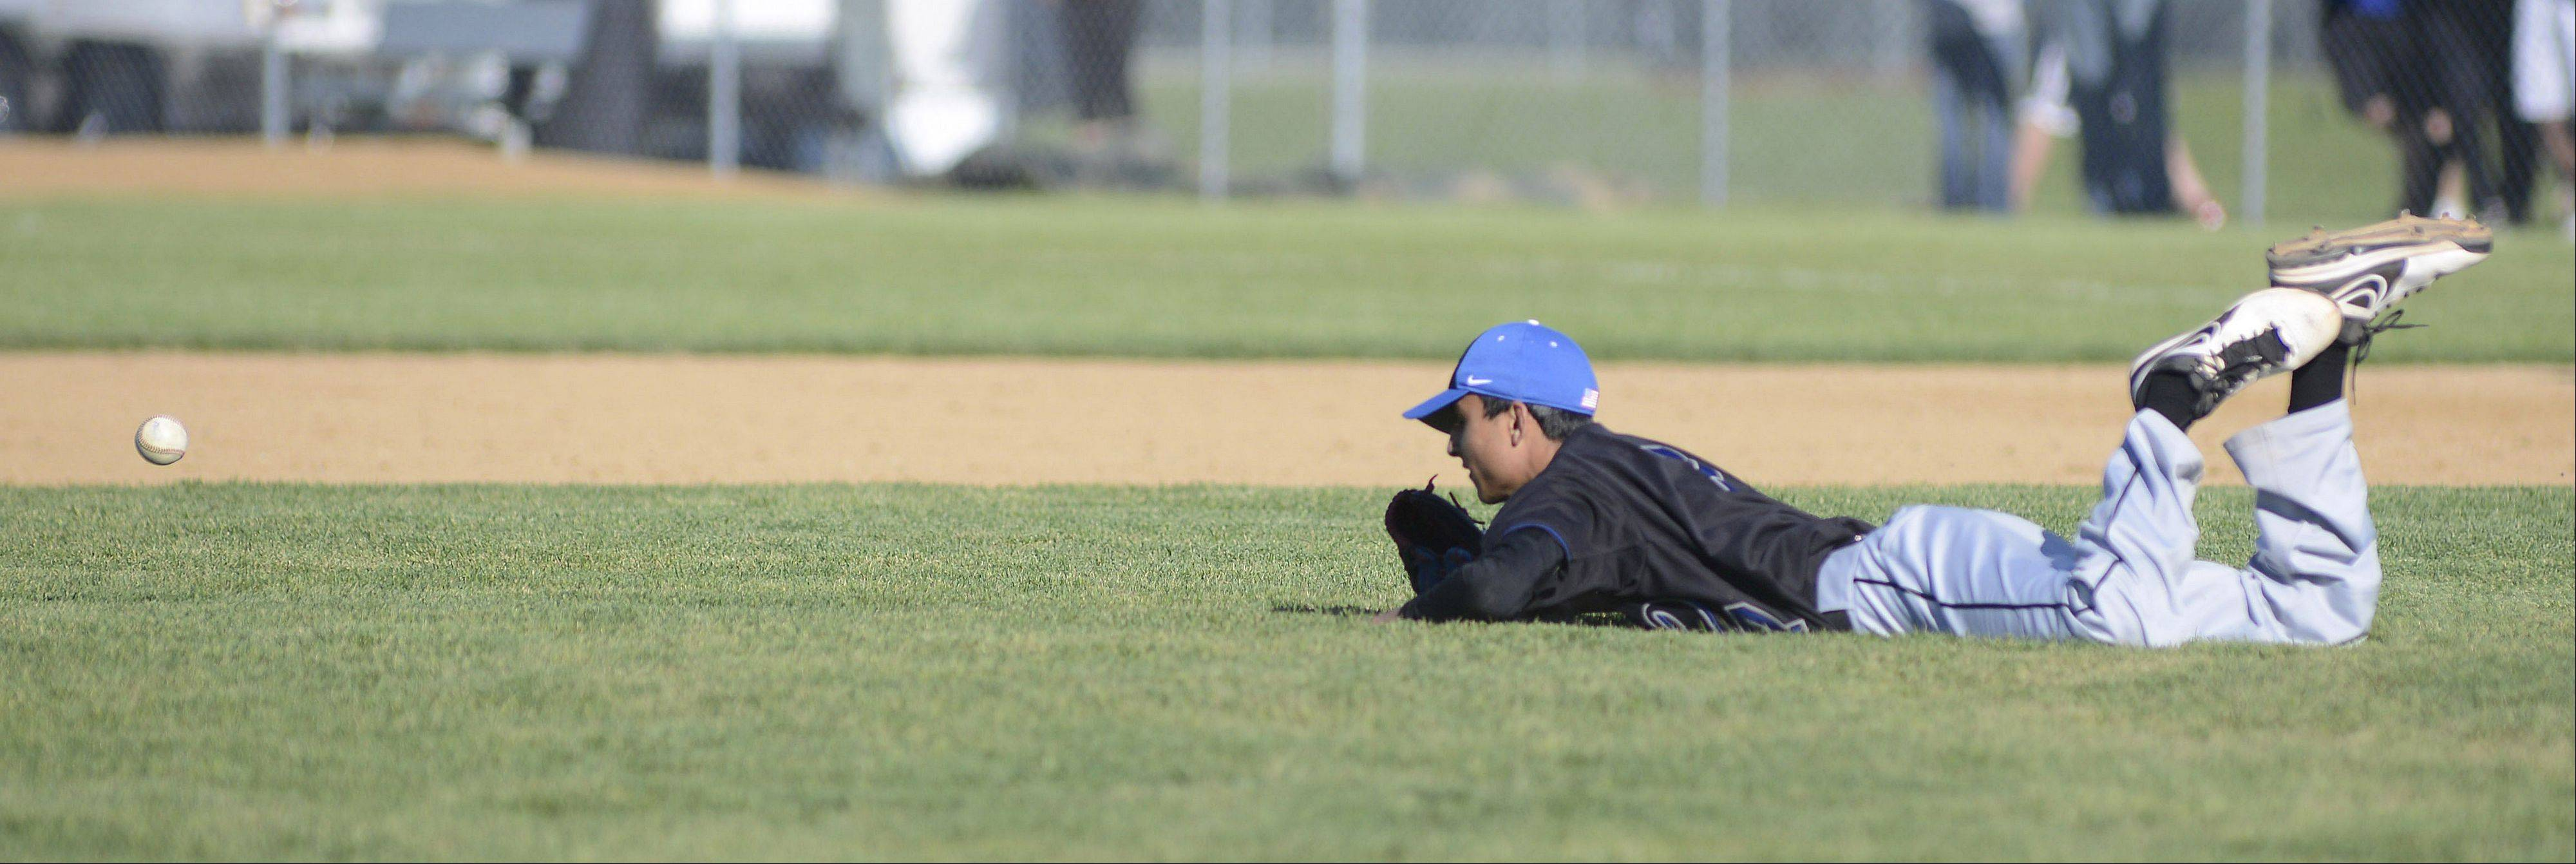 St. Charles North pitcher Ankur Shah dives short of the ball Friday.